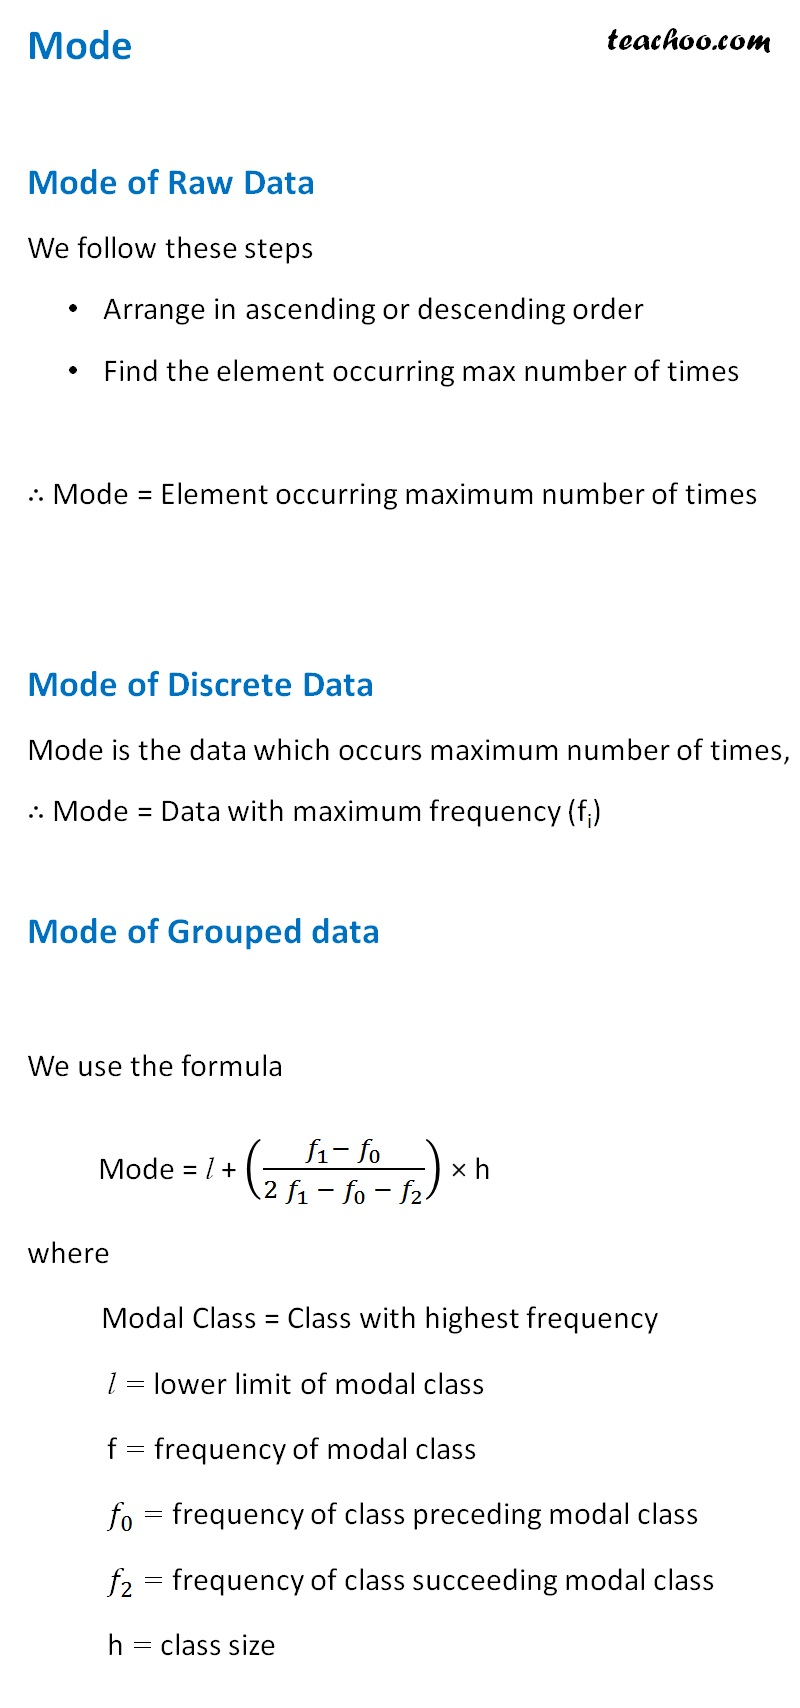 Mode of Raw, Discrete and Grouped Data.jpg